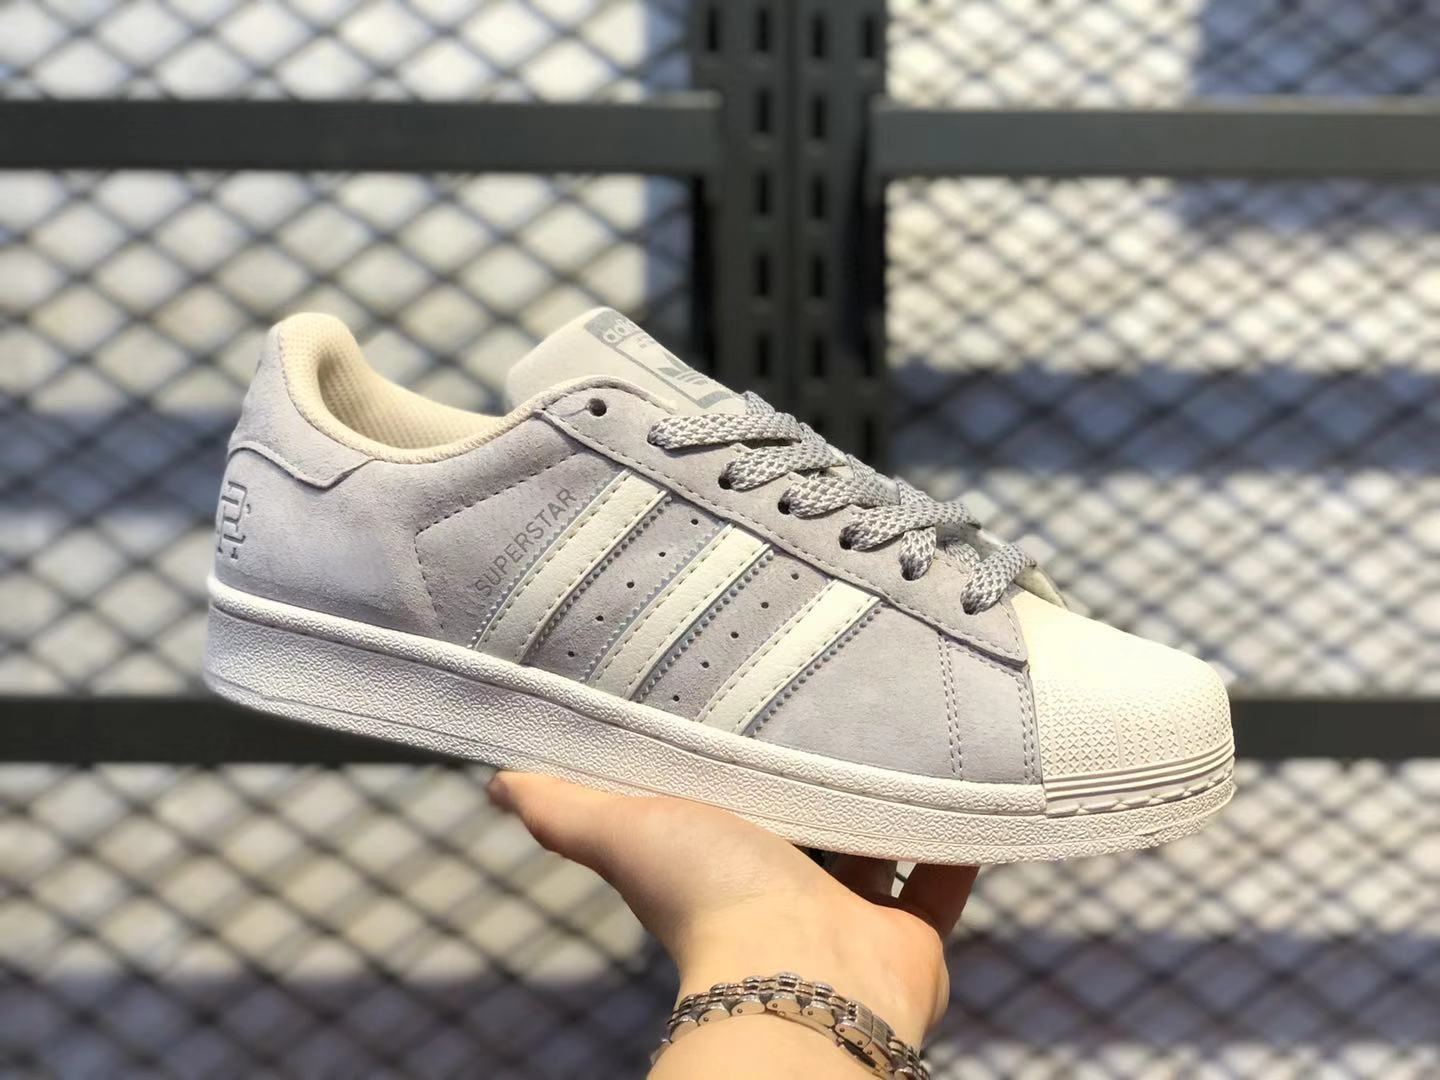 Reigning Champ x Adidas Superstar Grey/Light Bone BS0911 Life Classic Shoes